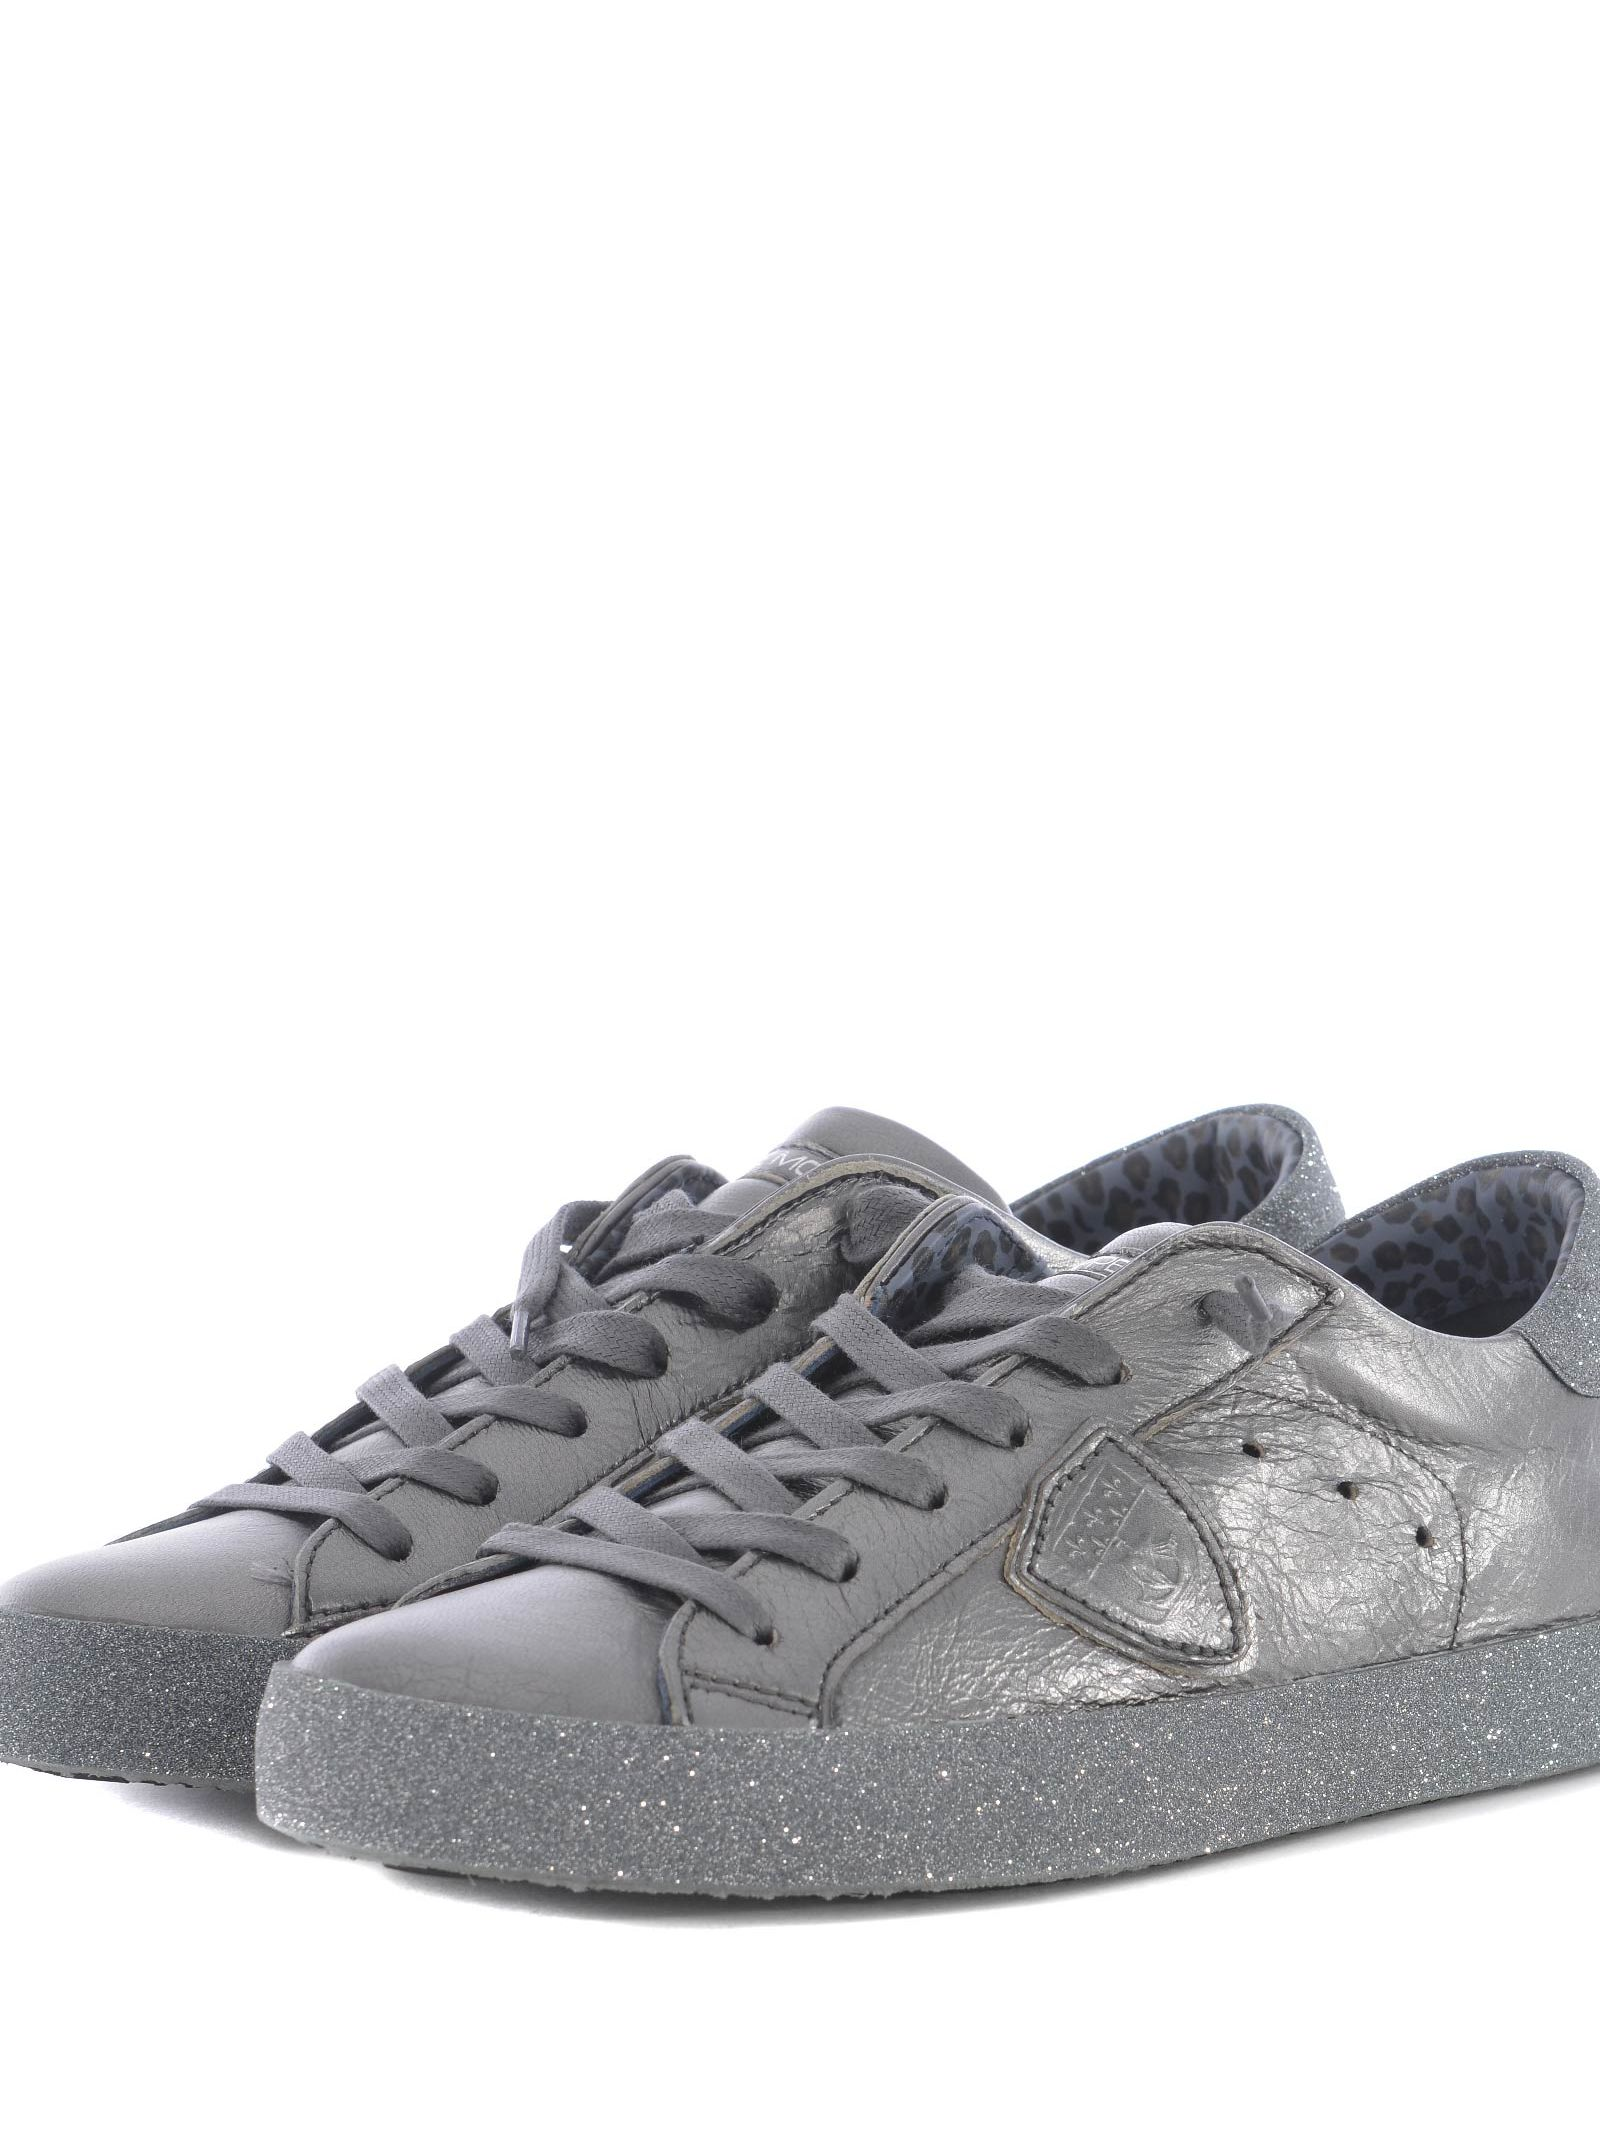 Philippe Model Lace-up Sneakers